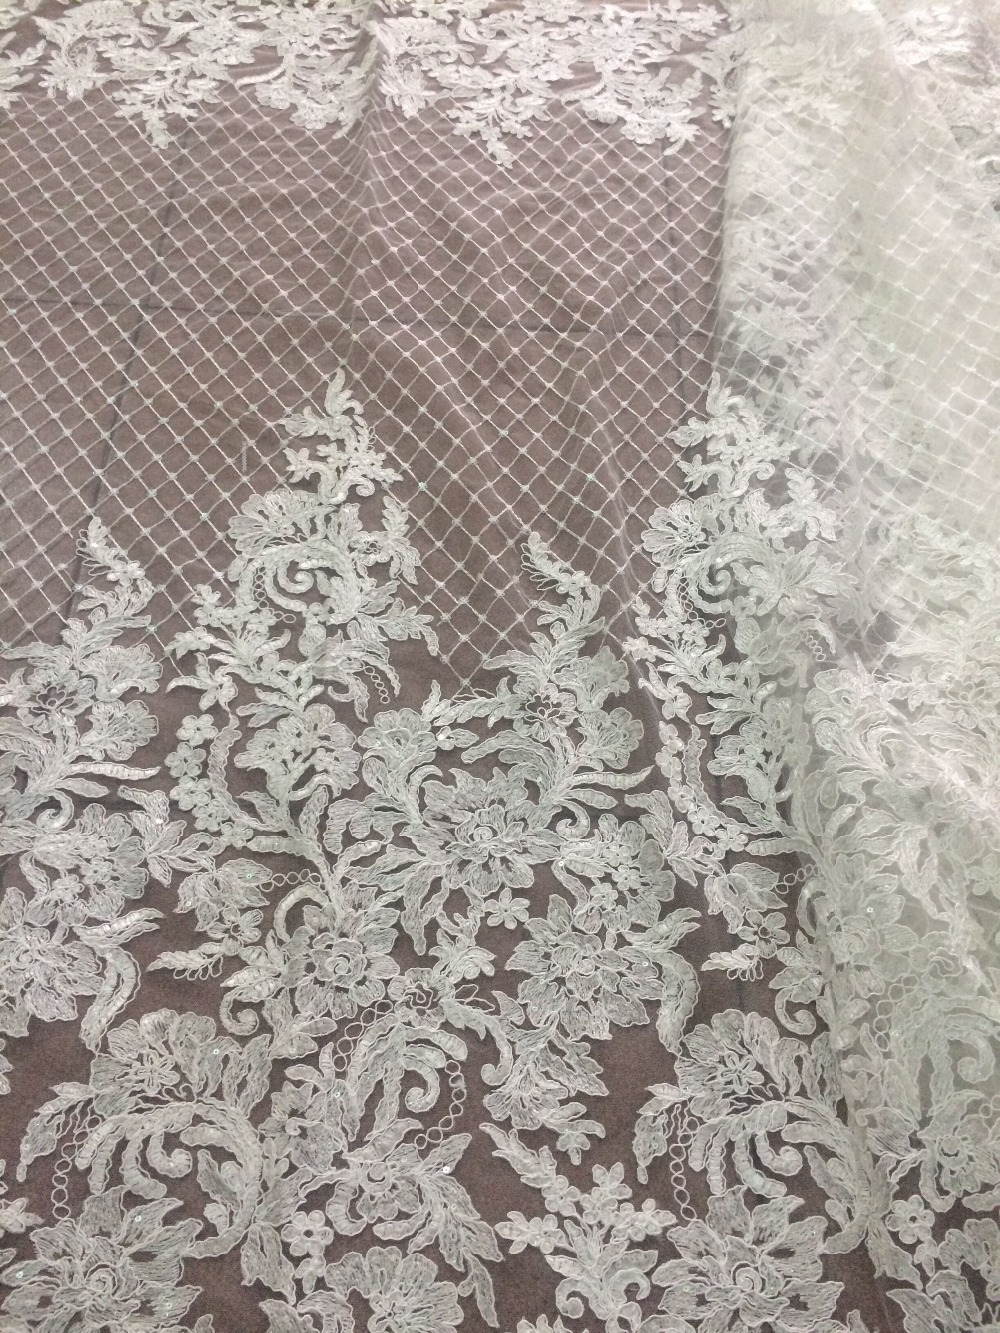 Fashion embroidered In Switzerland New Arrival LJY 6910 African Cord Net Lace Fabric with sequins for wedding-in Lace from Home & Garden    1